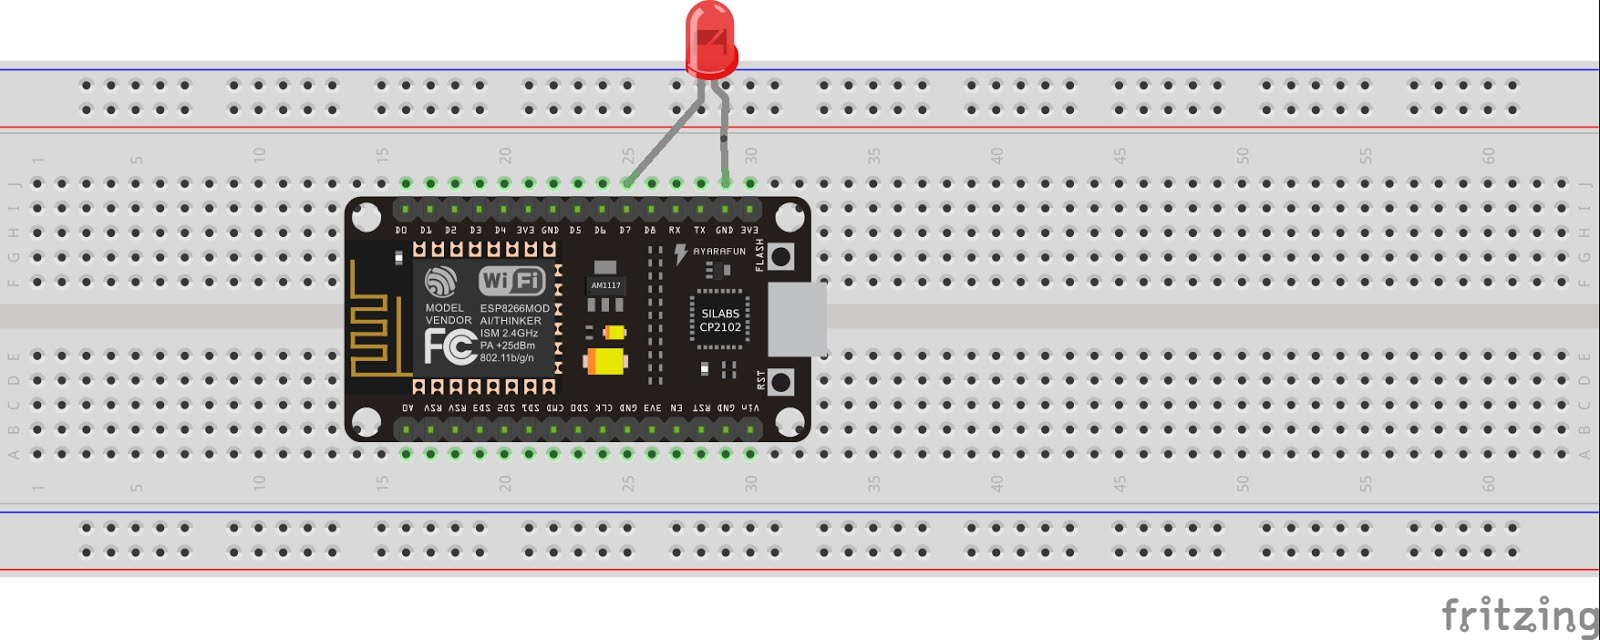 Robocircuits Cc3d Bluetooth Wiring Diagram For This Example I Have Used Nodemcu Esp8266 And If You Are Using Any Other Vendor Wifi Chips Or Generic Module Please Check With The Pin